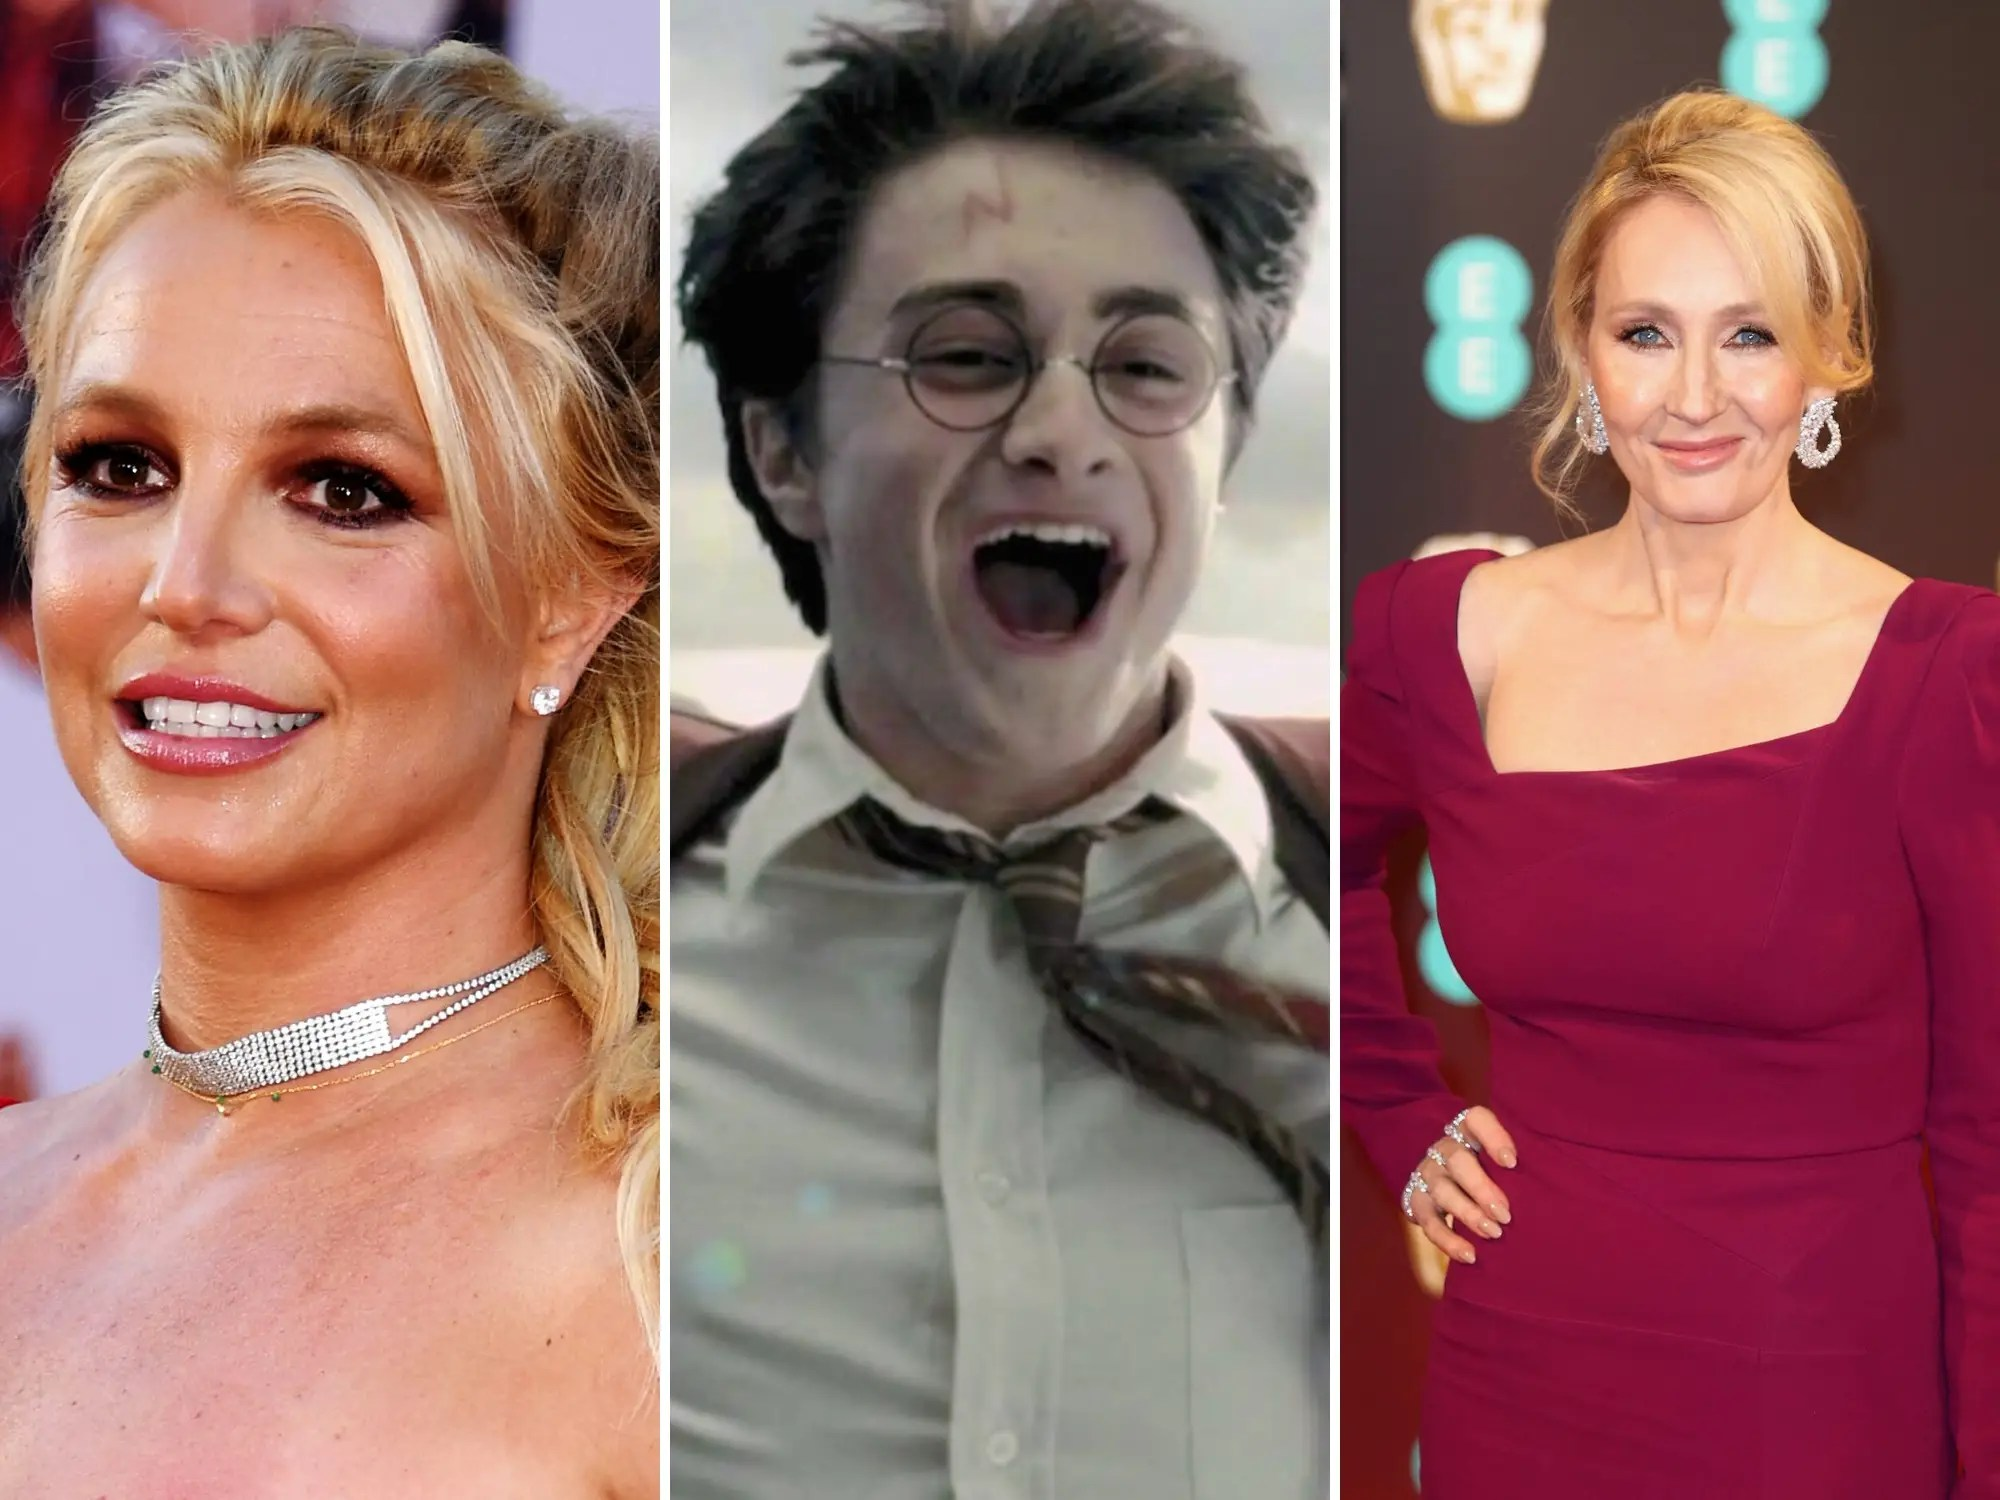 Jk Rowling Reveals Meme Challenge Is Now Addressing Everything In